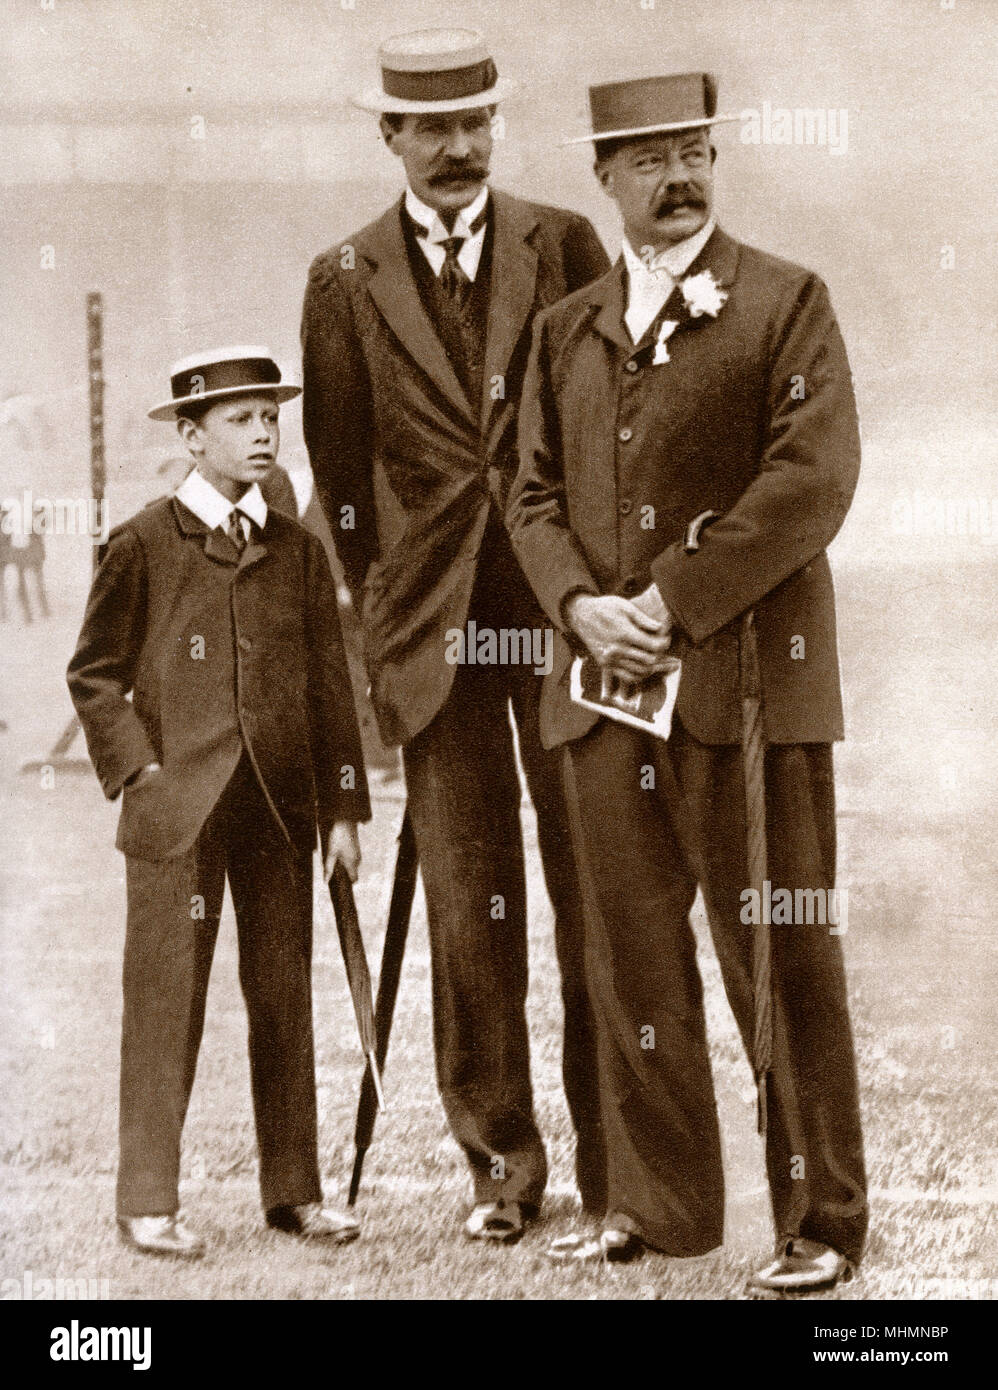 Prince Albert, Duke of York (1895-1952) (later King George VI) - his tutor Mr H. P. Hansell - William Grenfell, 1st Baron Desborough (1855-1945) - pictures at the Amateur Athletics Association meeting in London in 1908.     Date: 1908 - Stock Image